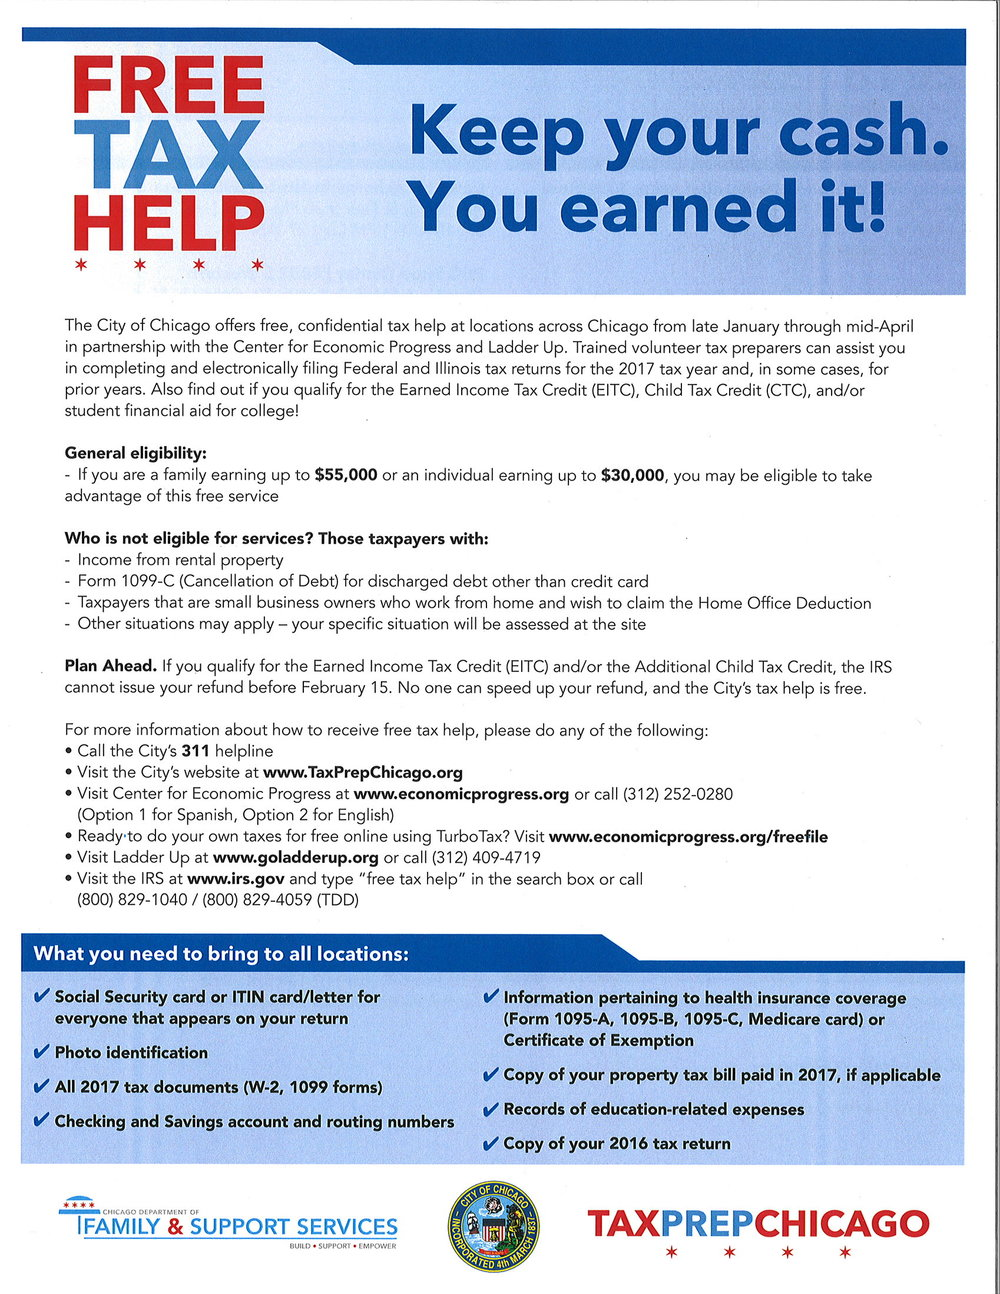 2018 Tax Prep Chicago Flier English_Page_1.jpg